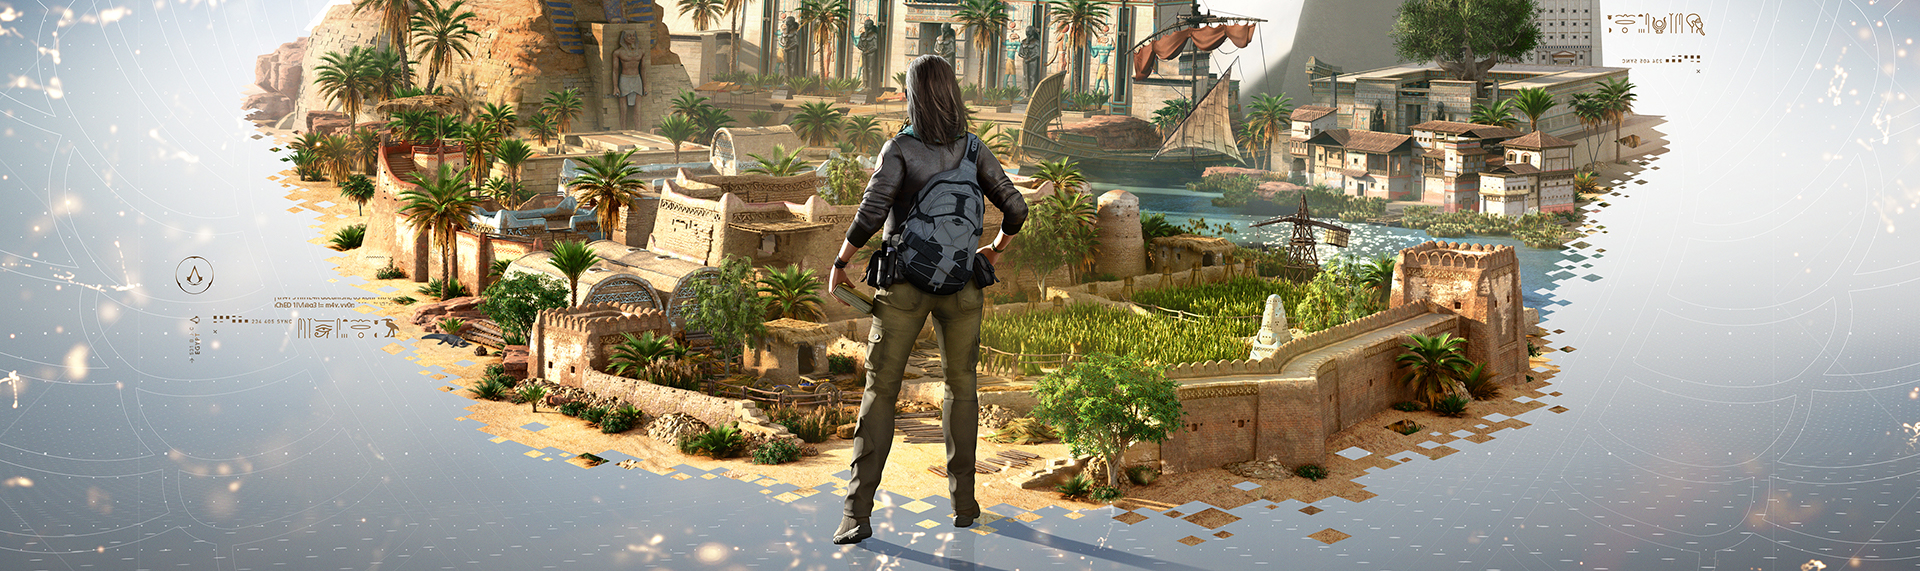 Discovery Tour – Ancient Egypt: Screenshots, Key Art and Gameplay Footage